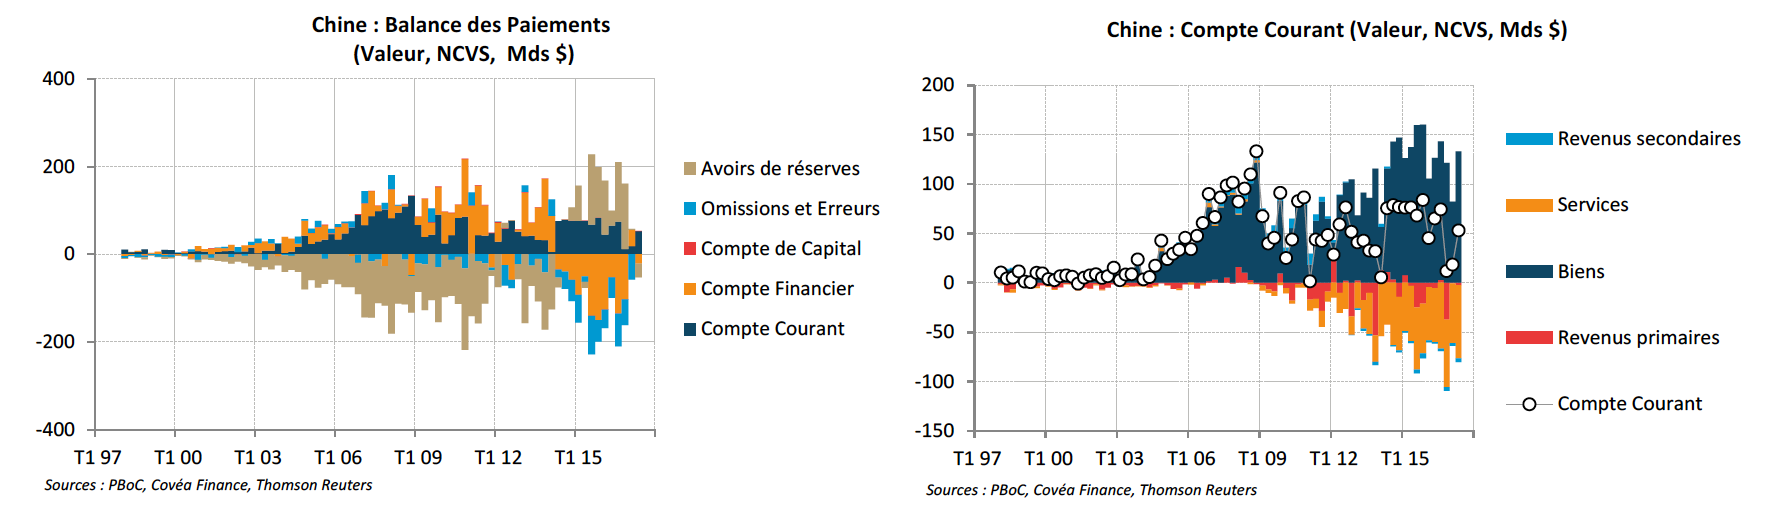 Chine capitaux